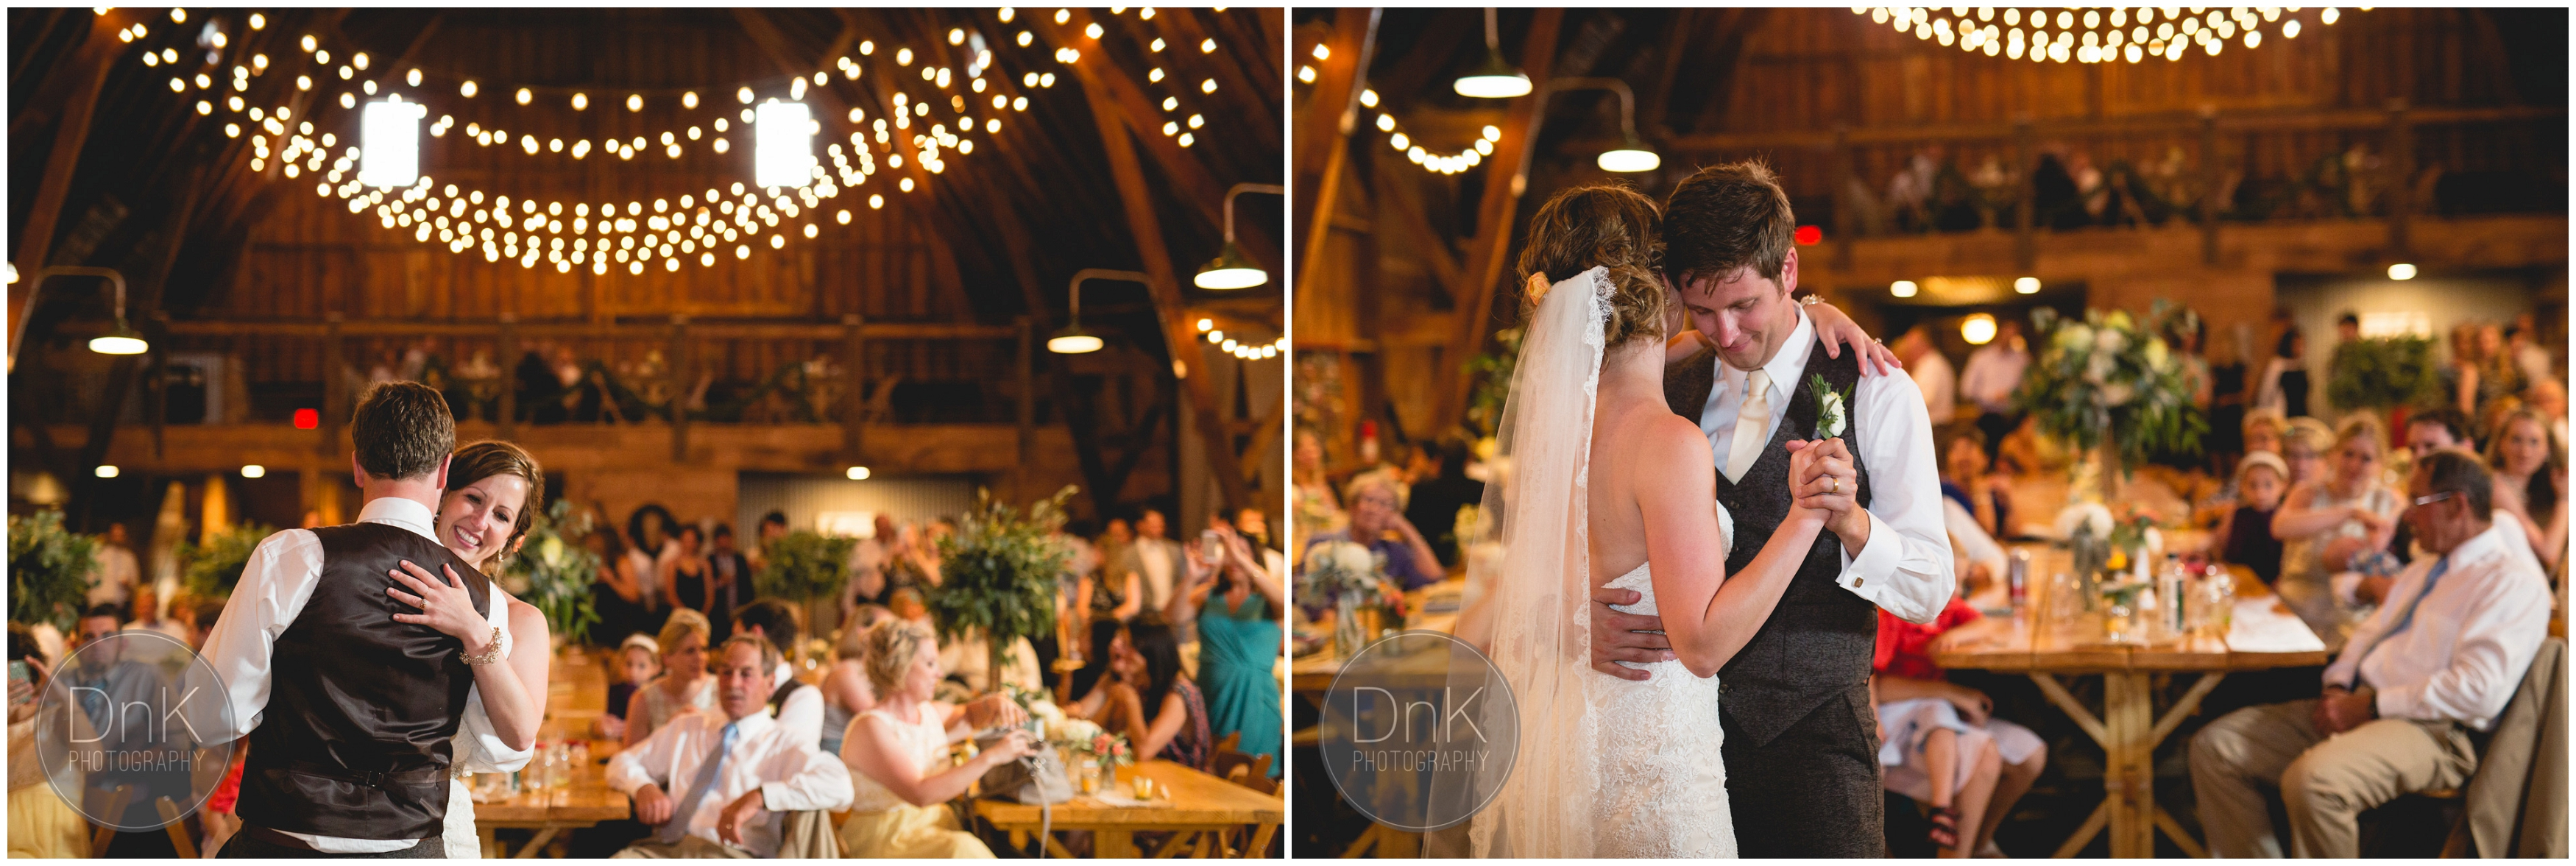 51 - Dellwood Barn Wedding Reception